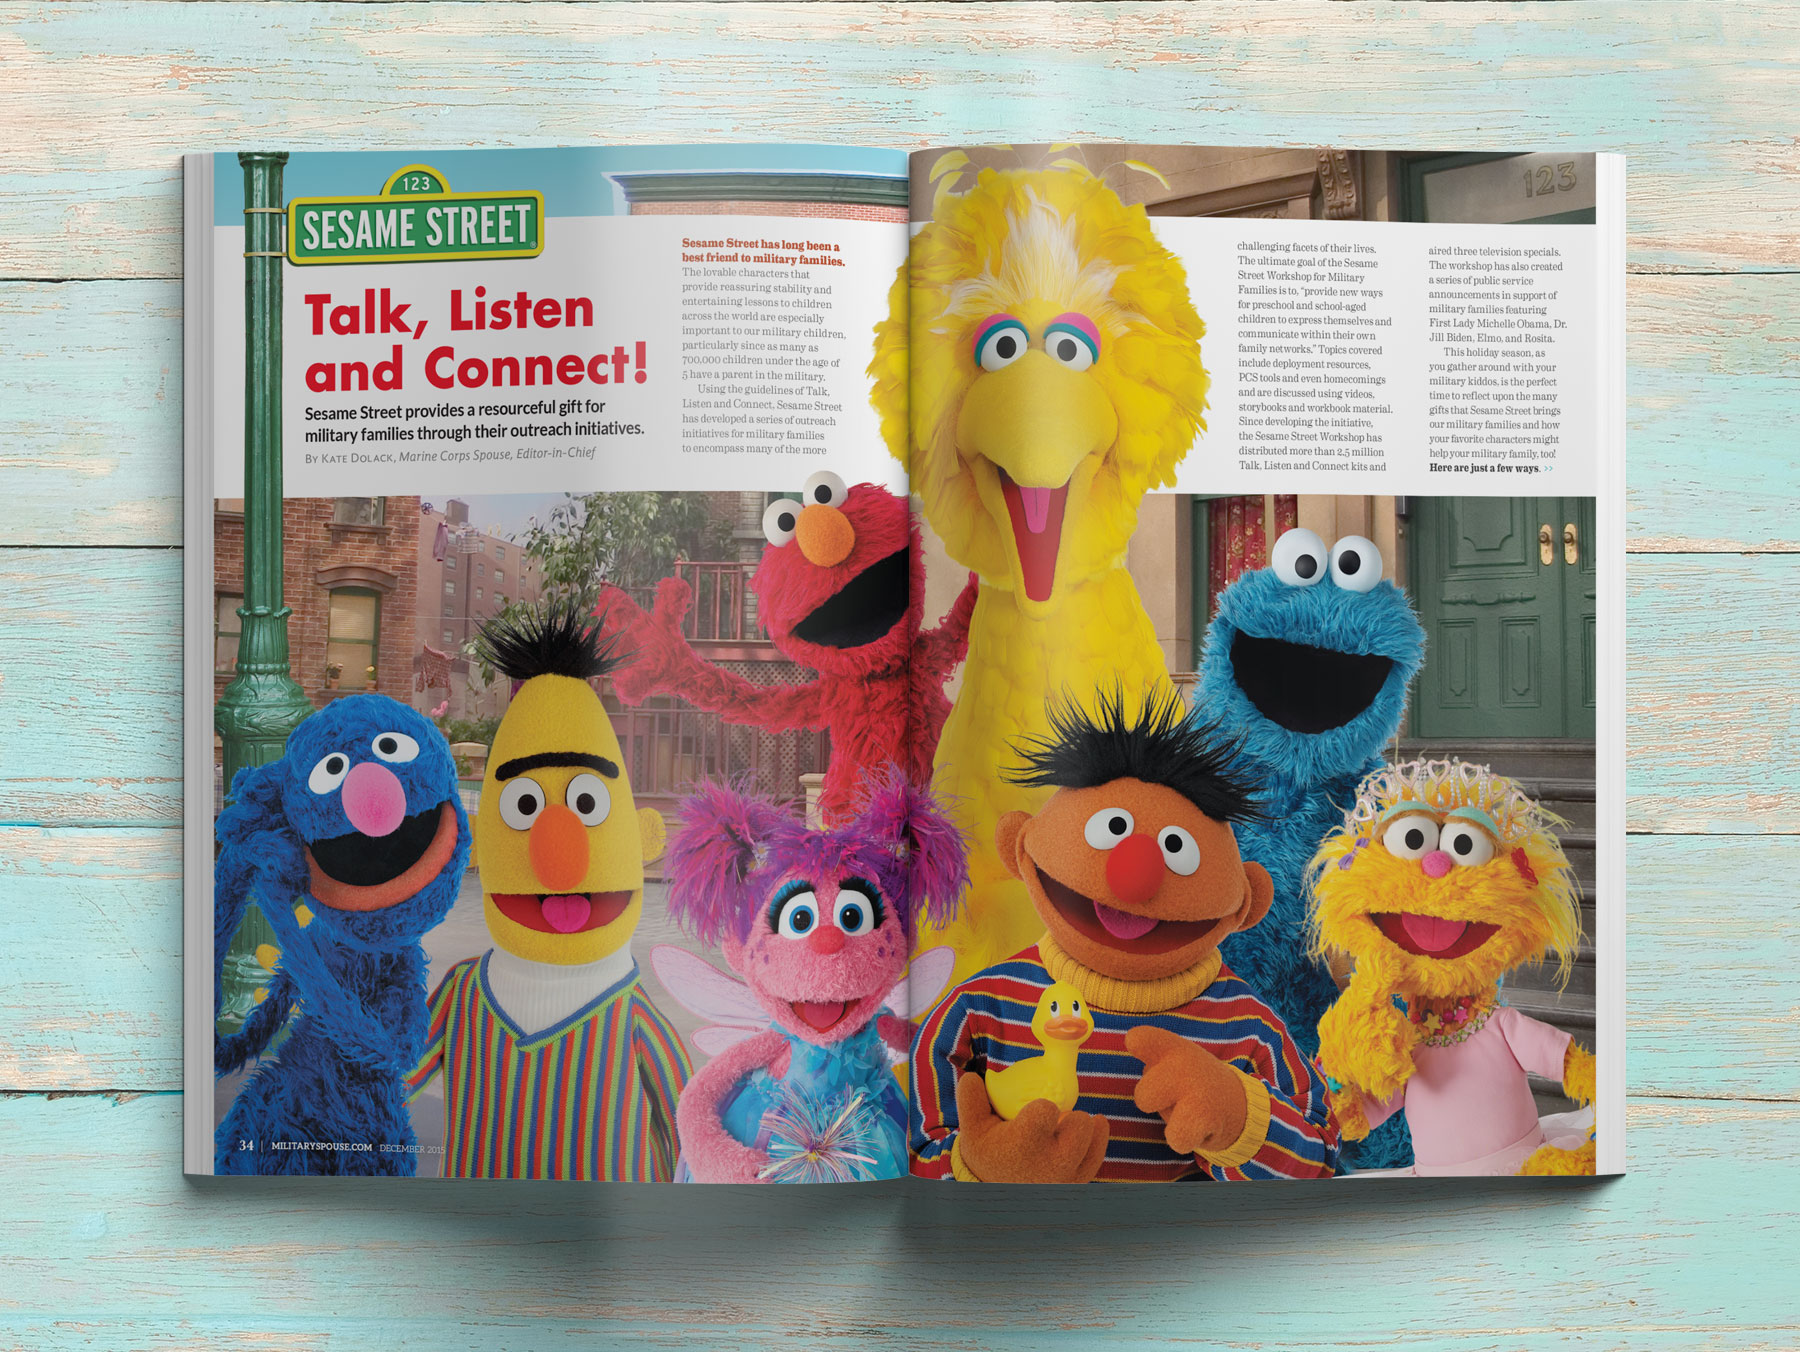 Sesame Street Military Spouse Magazine Spread - 1